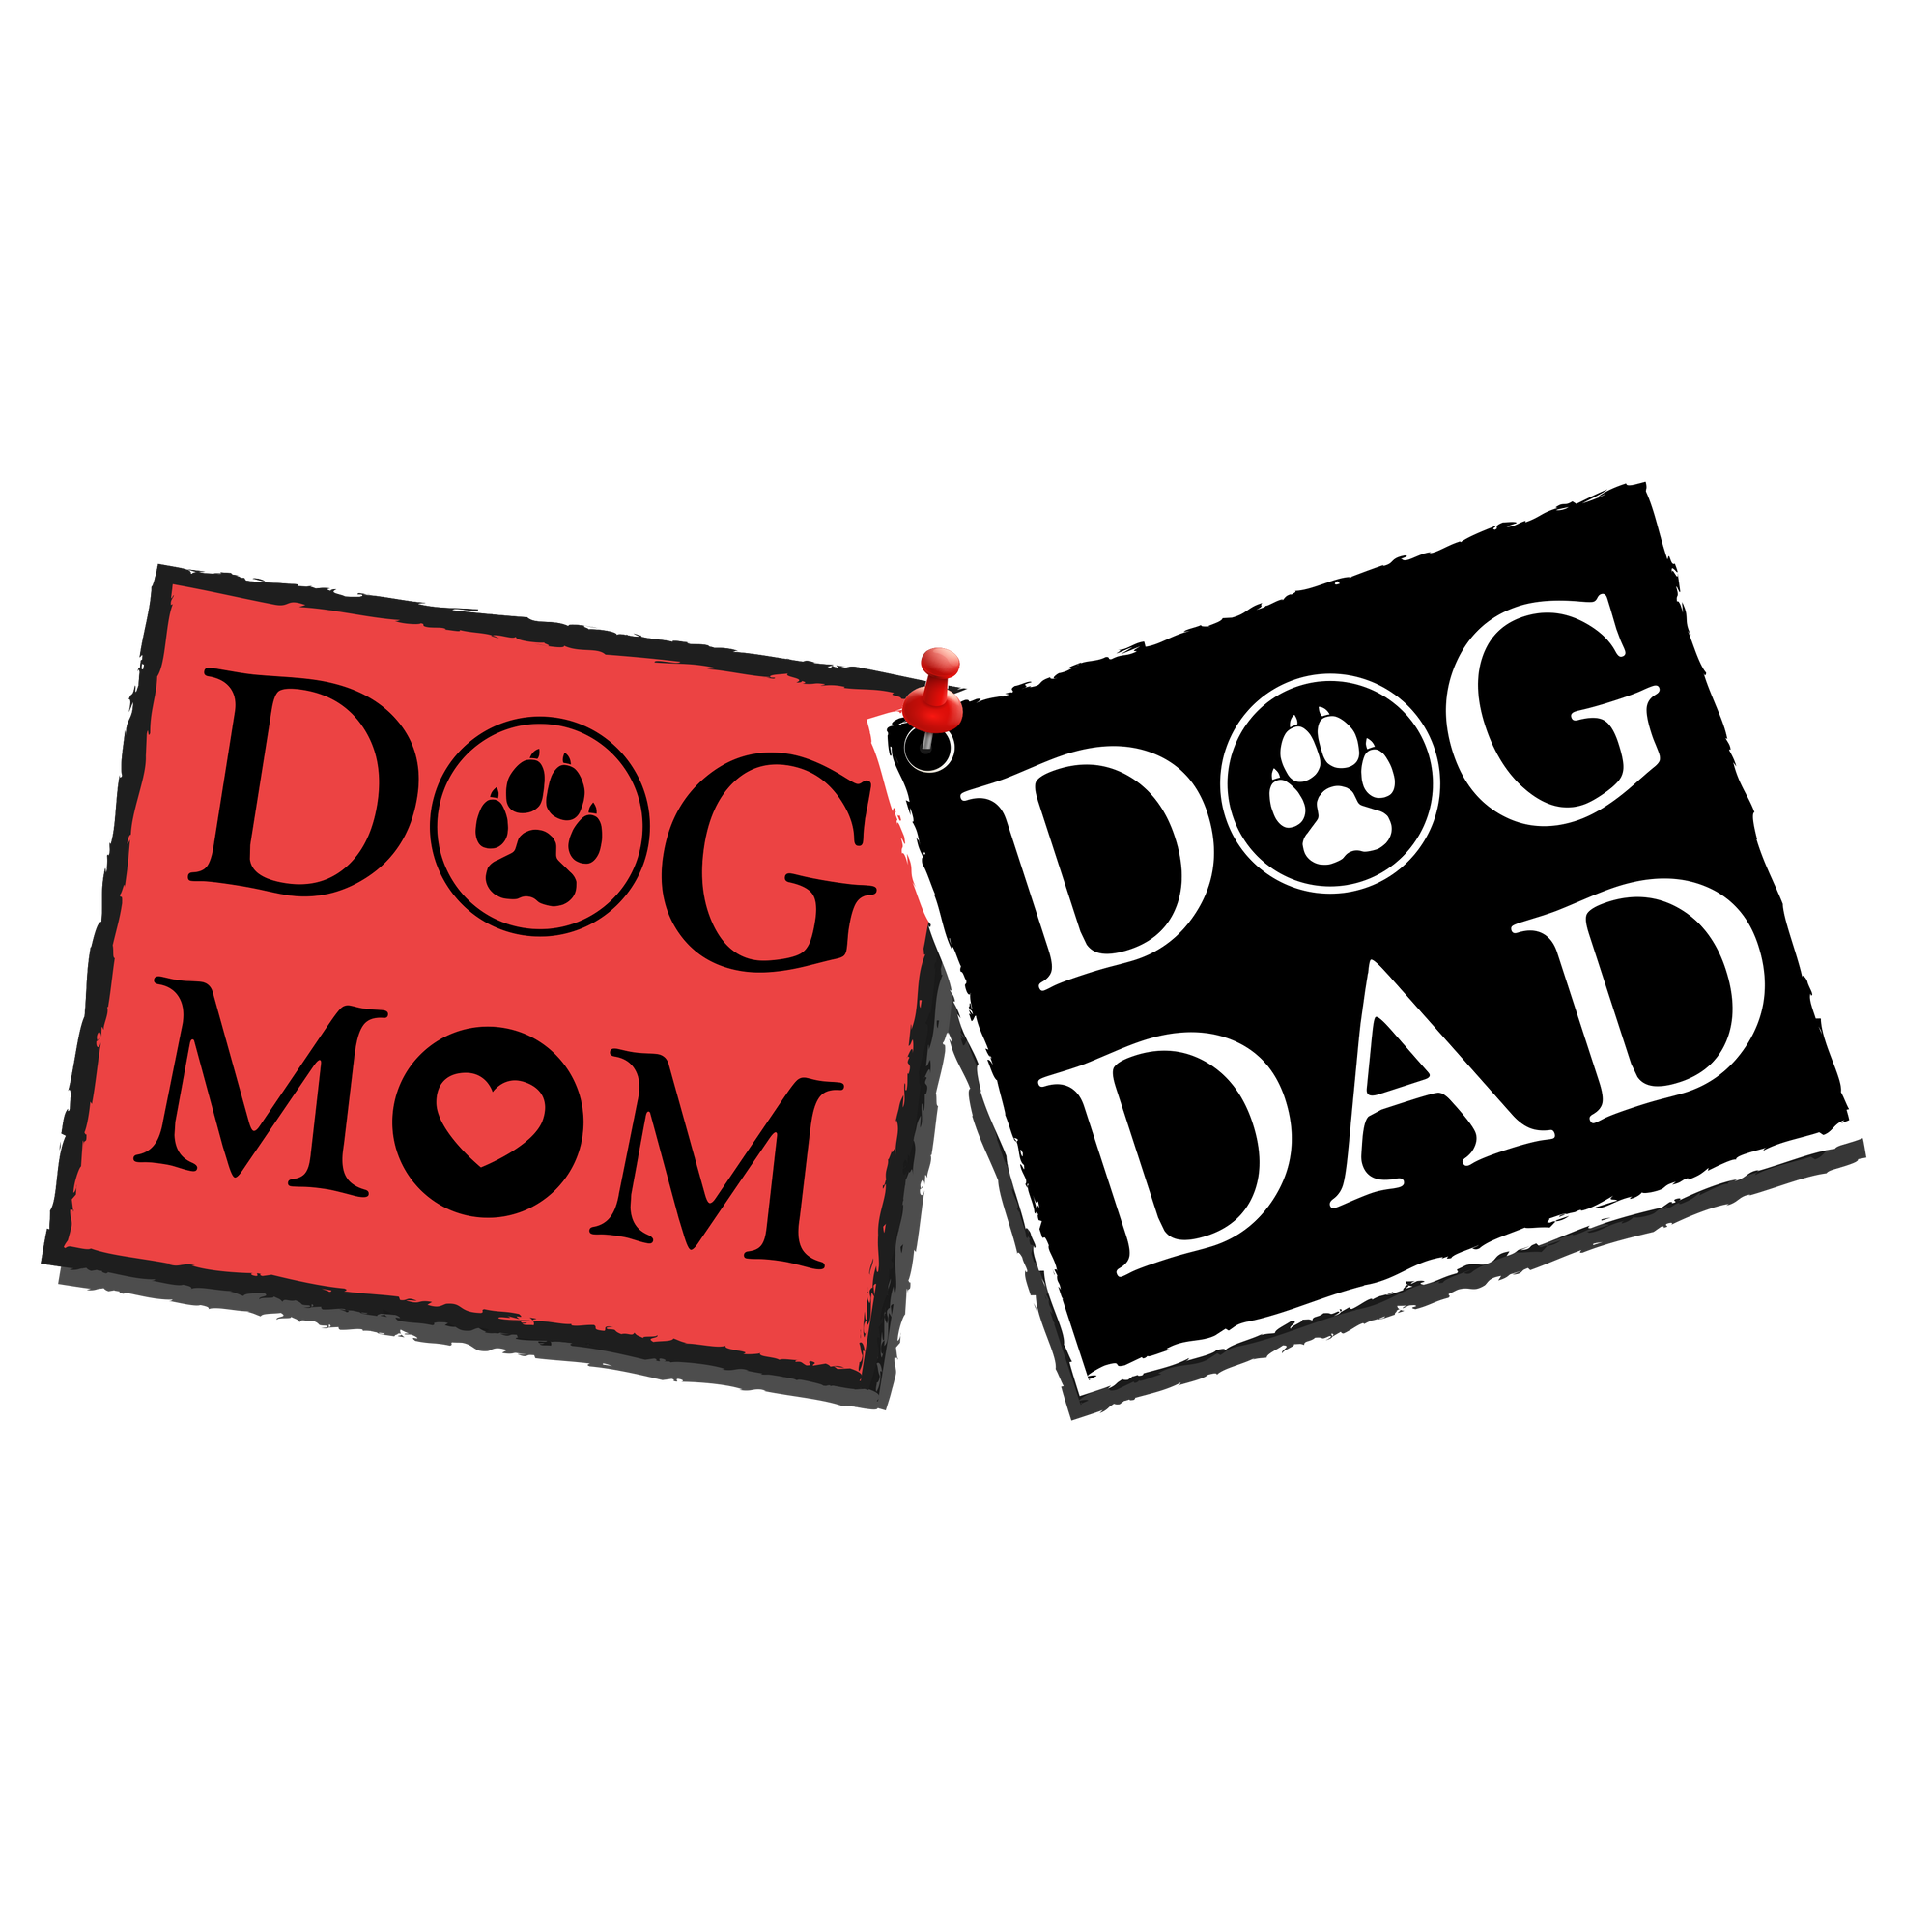 Dog Mom and Dog Dad Designs - Wear Pet - DOG MOM / DAD - Collection